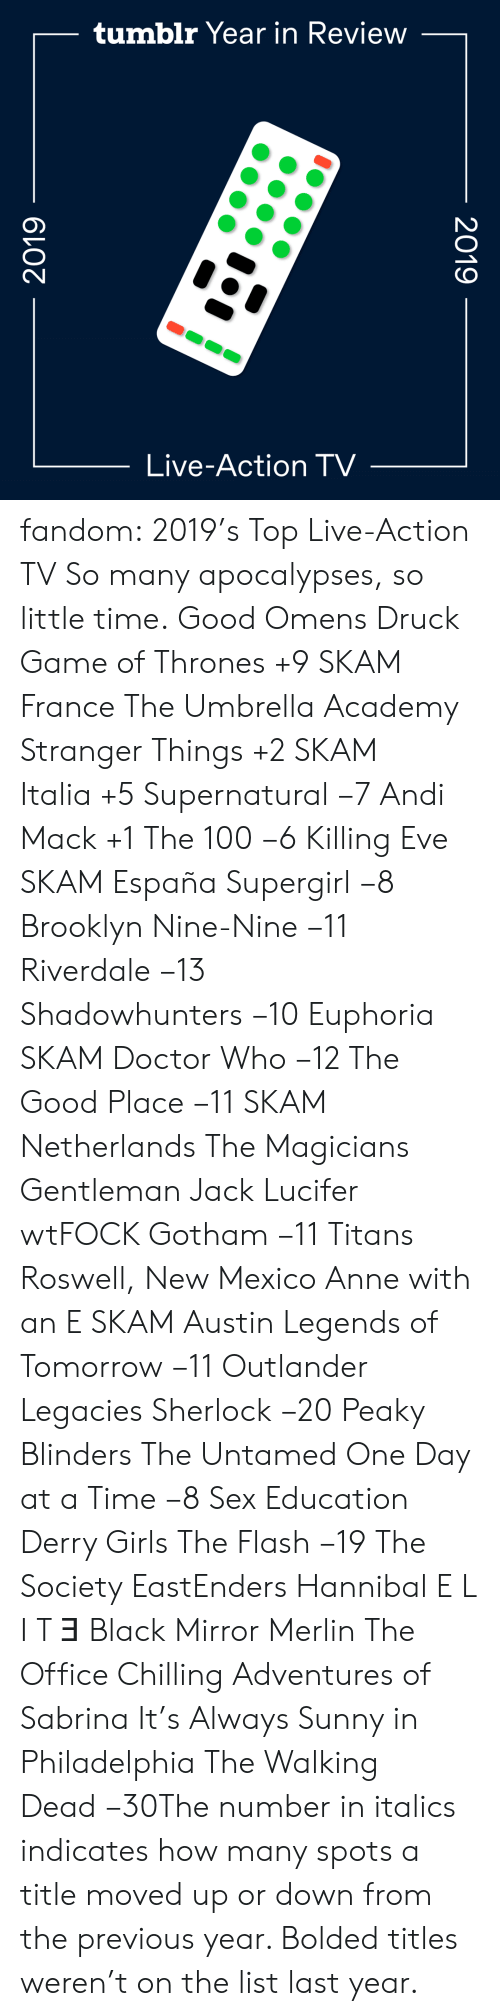 thrones: tumblr Year in Review  Live-Action TV-  2019  2019 fandom:  2019's Top Live-Action TV  So many apocalypses, so little time.  Good Omens  Druck  Game of Thrones +9  SKAM France  The Umbrella Academy  Stranger Things +2  SKAM Italia +5  Supernatural −7  Andi Mack +1  The 100 −6  Killing Eve   SKAM España  Supergirl −8  Brooklyn Nine-Nine −11  Riverdale −13  Shadowhunters −10  Euphoria  SKAM  Doctor Who −12  The Good Place −11  SKAM Netherlands  The Magicians  Gentleman Jack  Lucifer  wtFOCK  Gotham −11  Titans  Roswell, New Mexico  Anne with an E  SKAM Austin  Legends of Tomorrow −11  Outlander  Legacies  Sherlock −20  Peaky Blinders  The Untamed  One Day at a Time −8  Sex Education  Derry Girls  The Flash −19  The Society  EastEnders  Hannibal  E L I T Ǝ  Black Mirror  Merlin  The Office  Chilling Adventures of Sabrina  It's Always Sunny in Philadelphia The Walking Dead −30The number in italics indicates how many spots a title moved up or down from the previous year. Bolded titles weren't on the list last year.